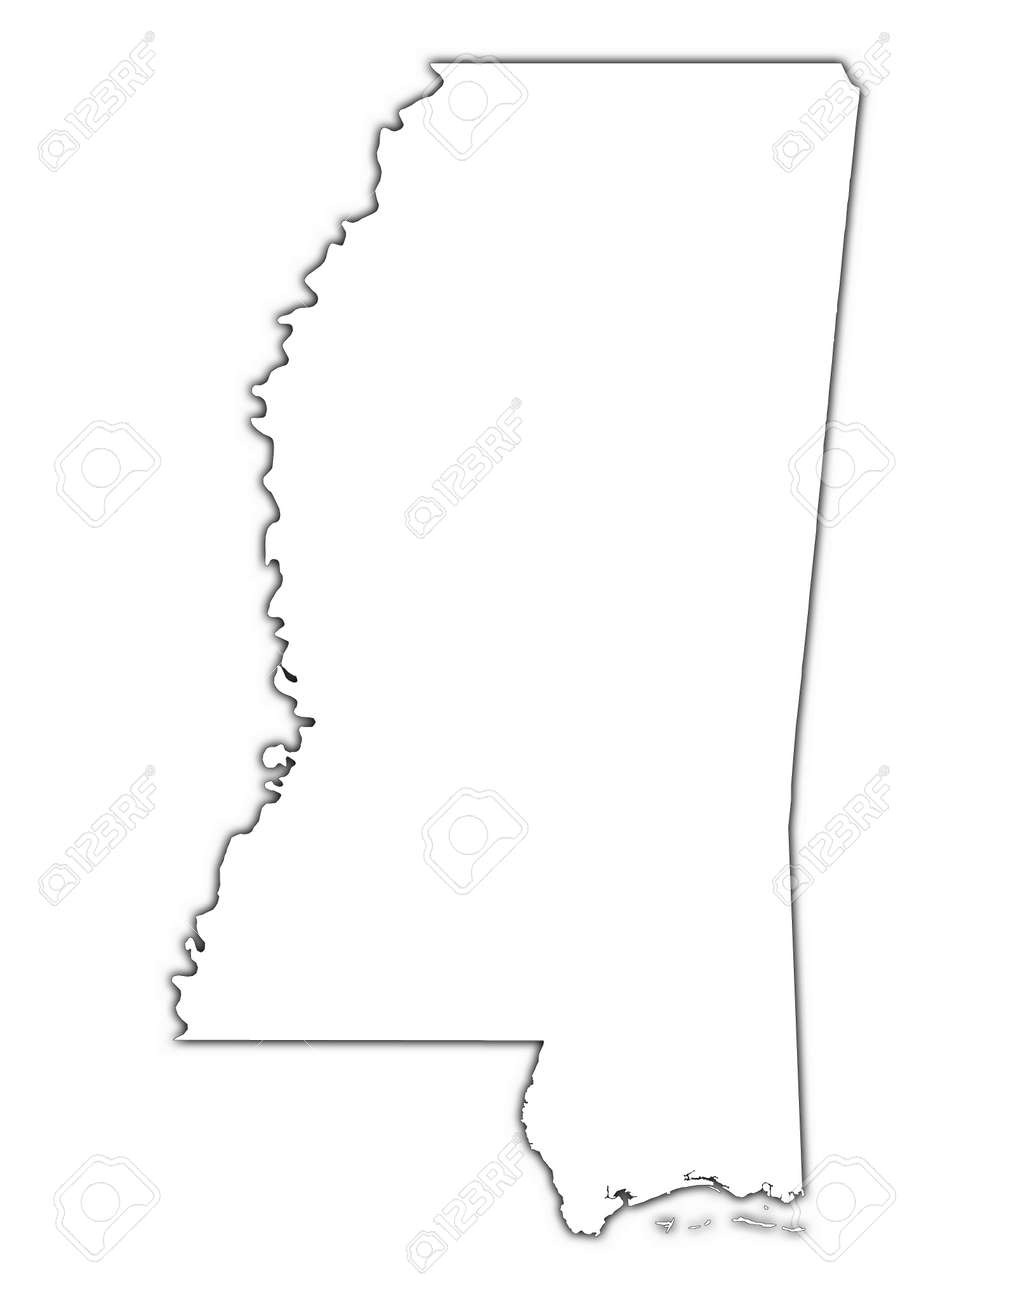 Mississippi State Map Outline.Mississippi Usa Outline Map With Shadow Detailed Mercator